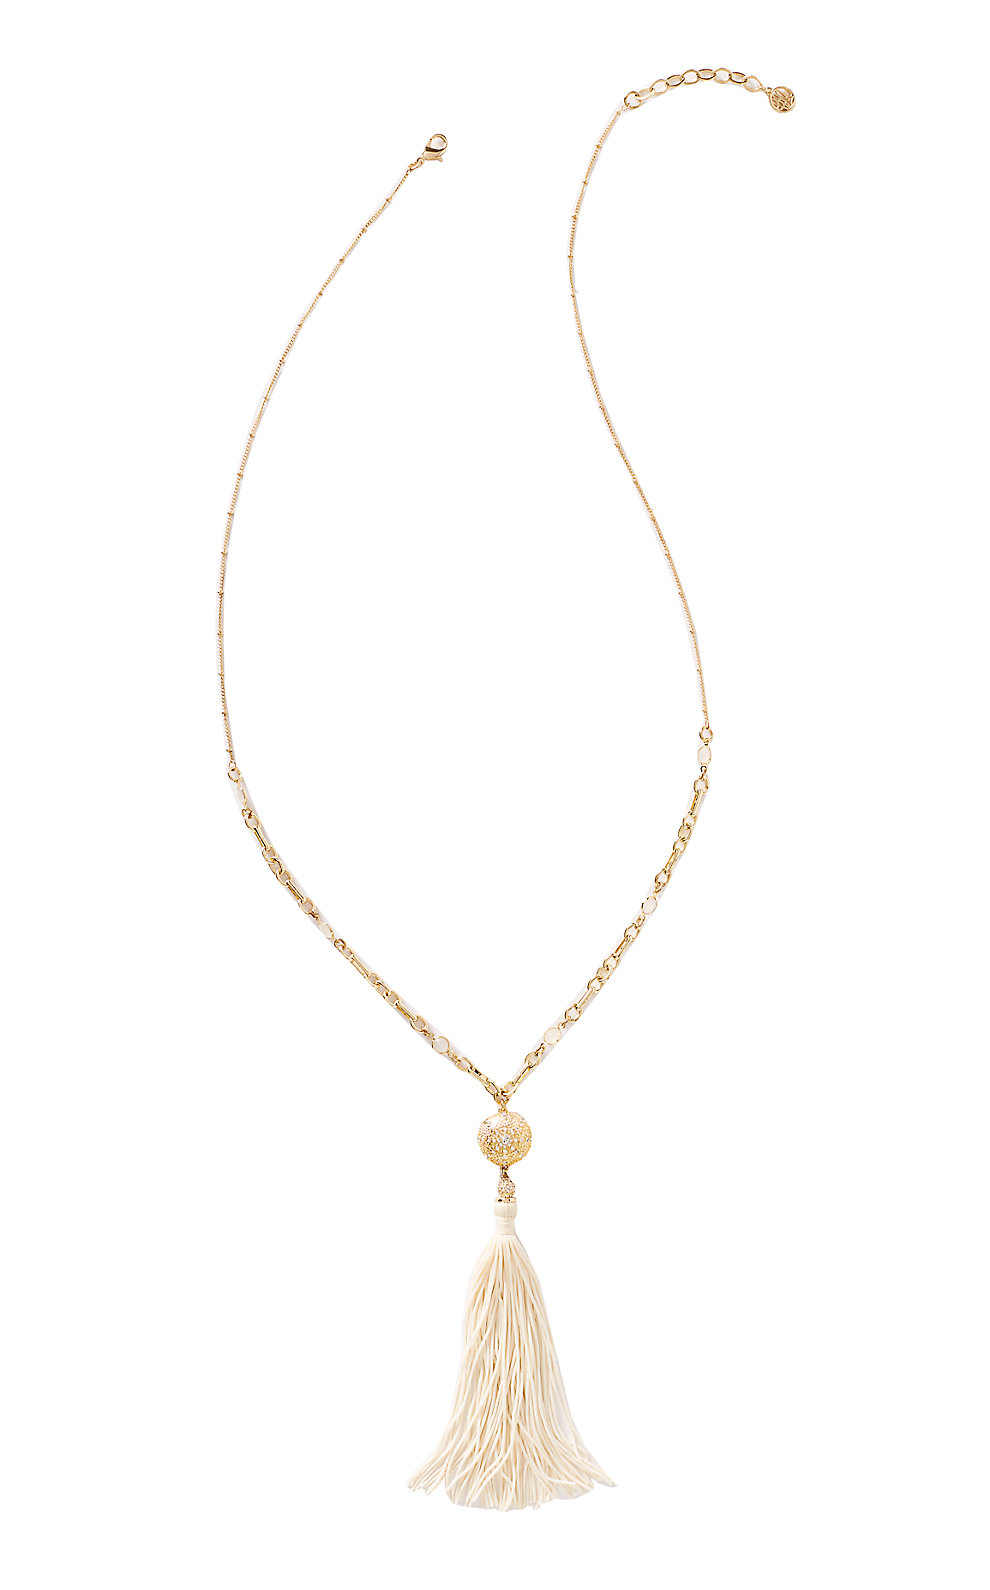 Lilly Pulitzer Sand Dune Tassel Necklace